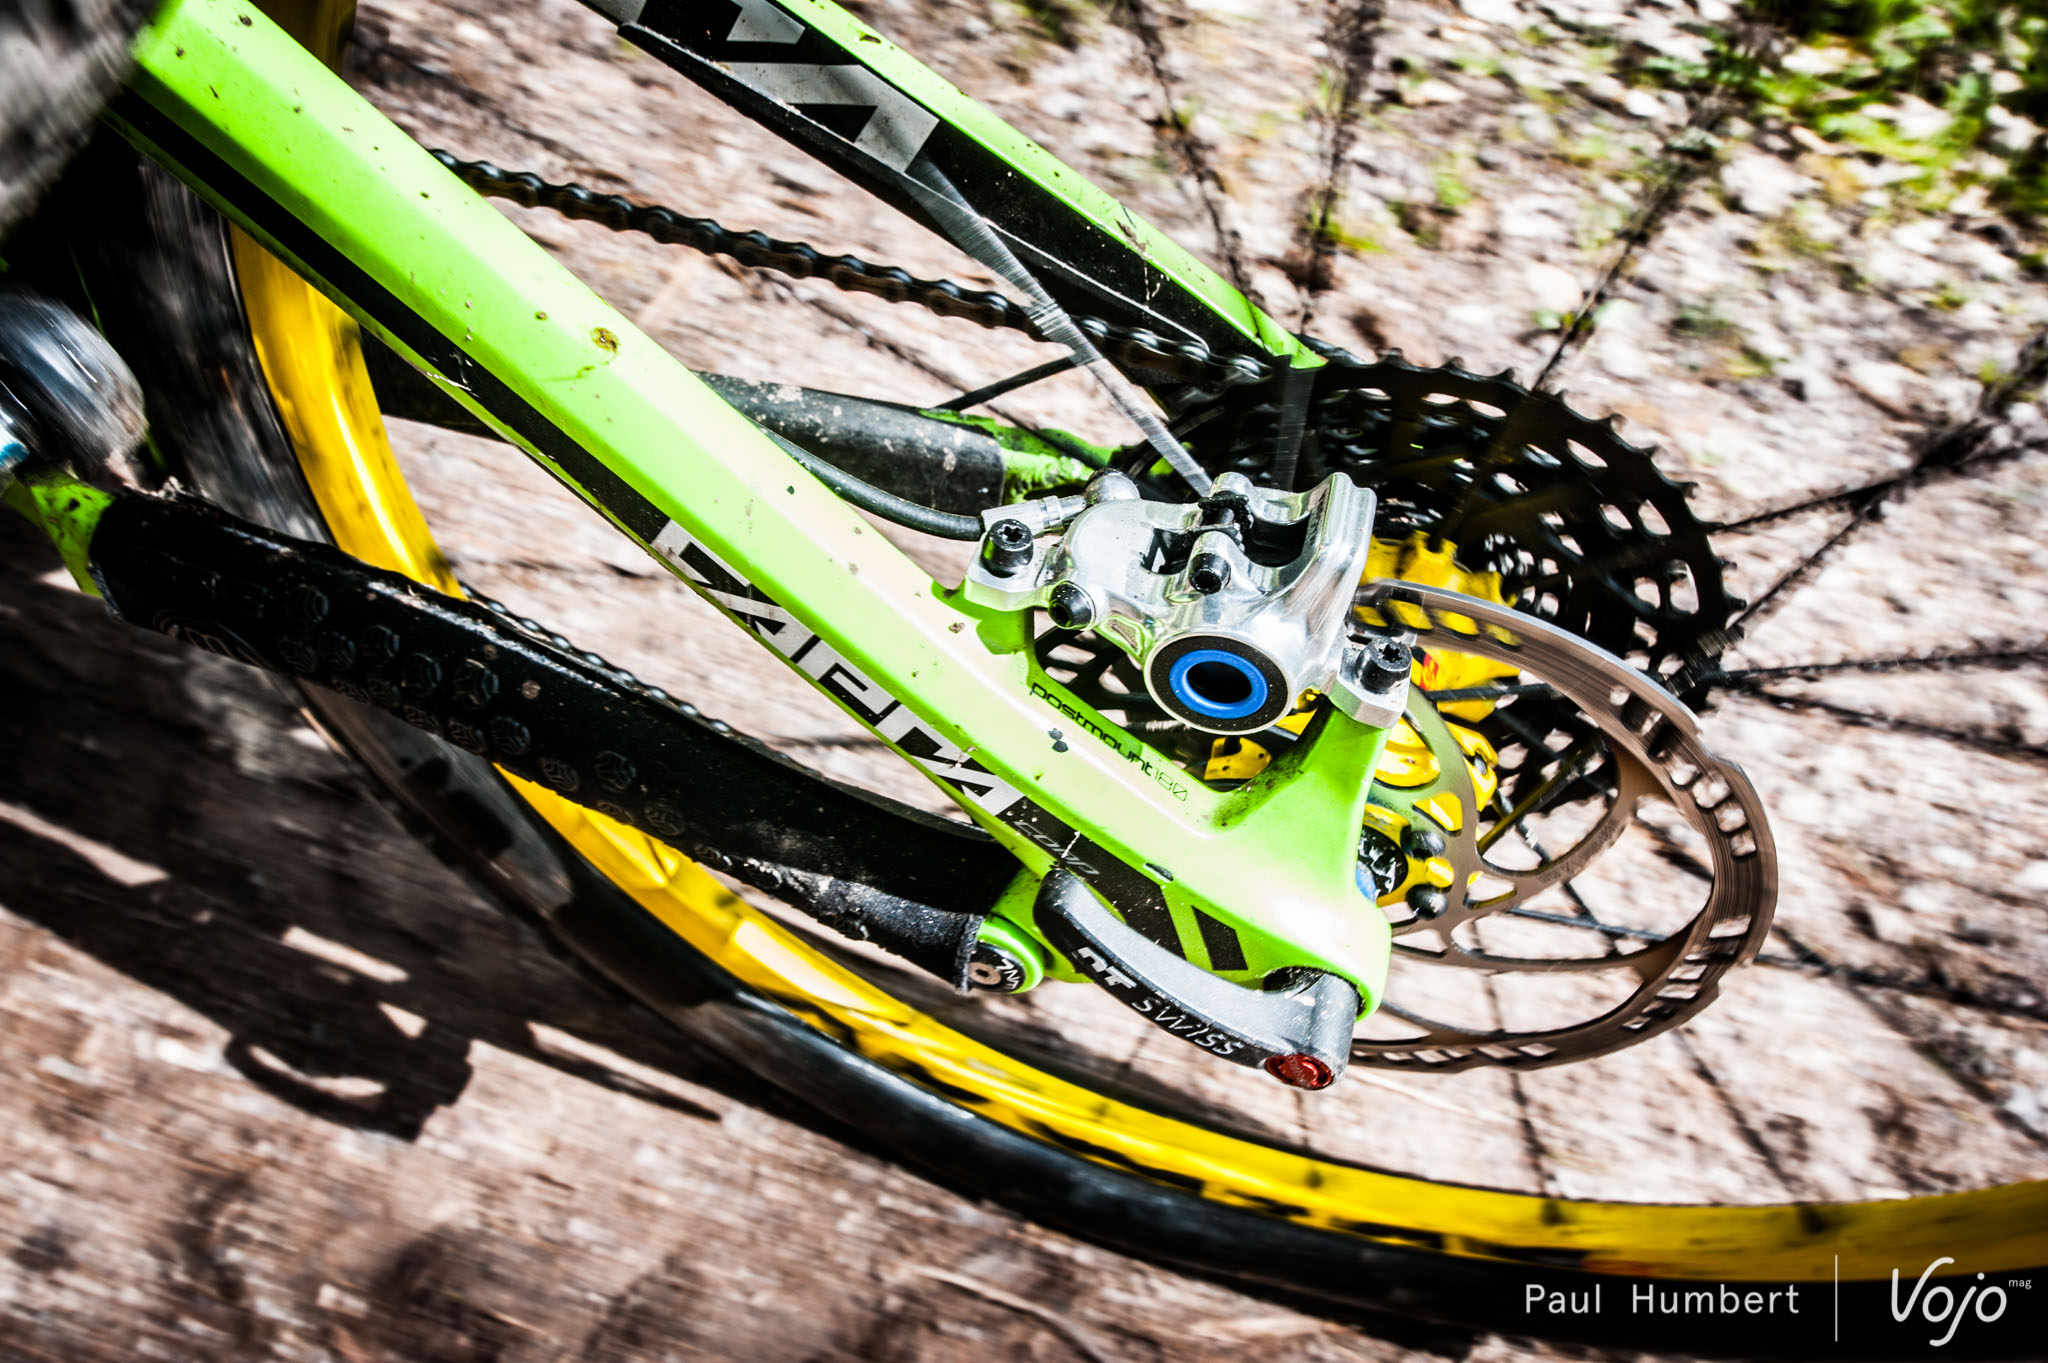 Magura-mt-trail-vojo-2016-paul-humbert-10